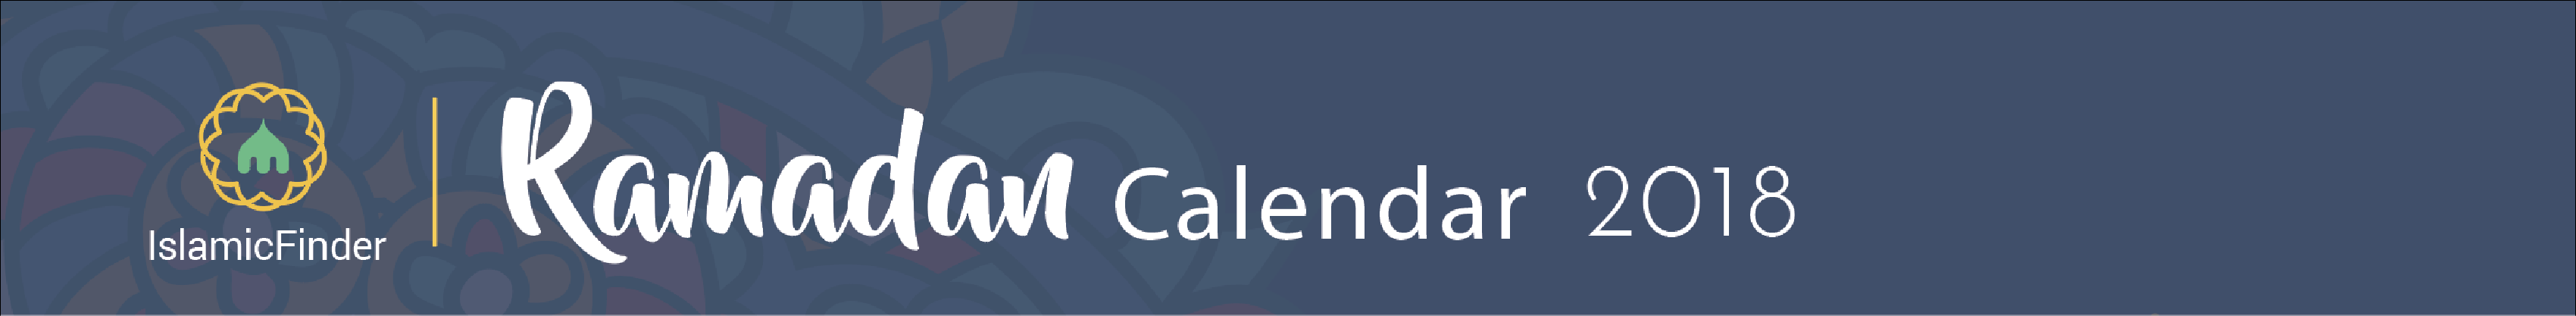 mountain view ramadan calendar 2018